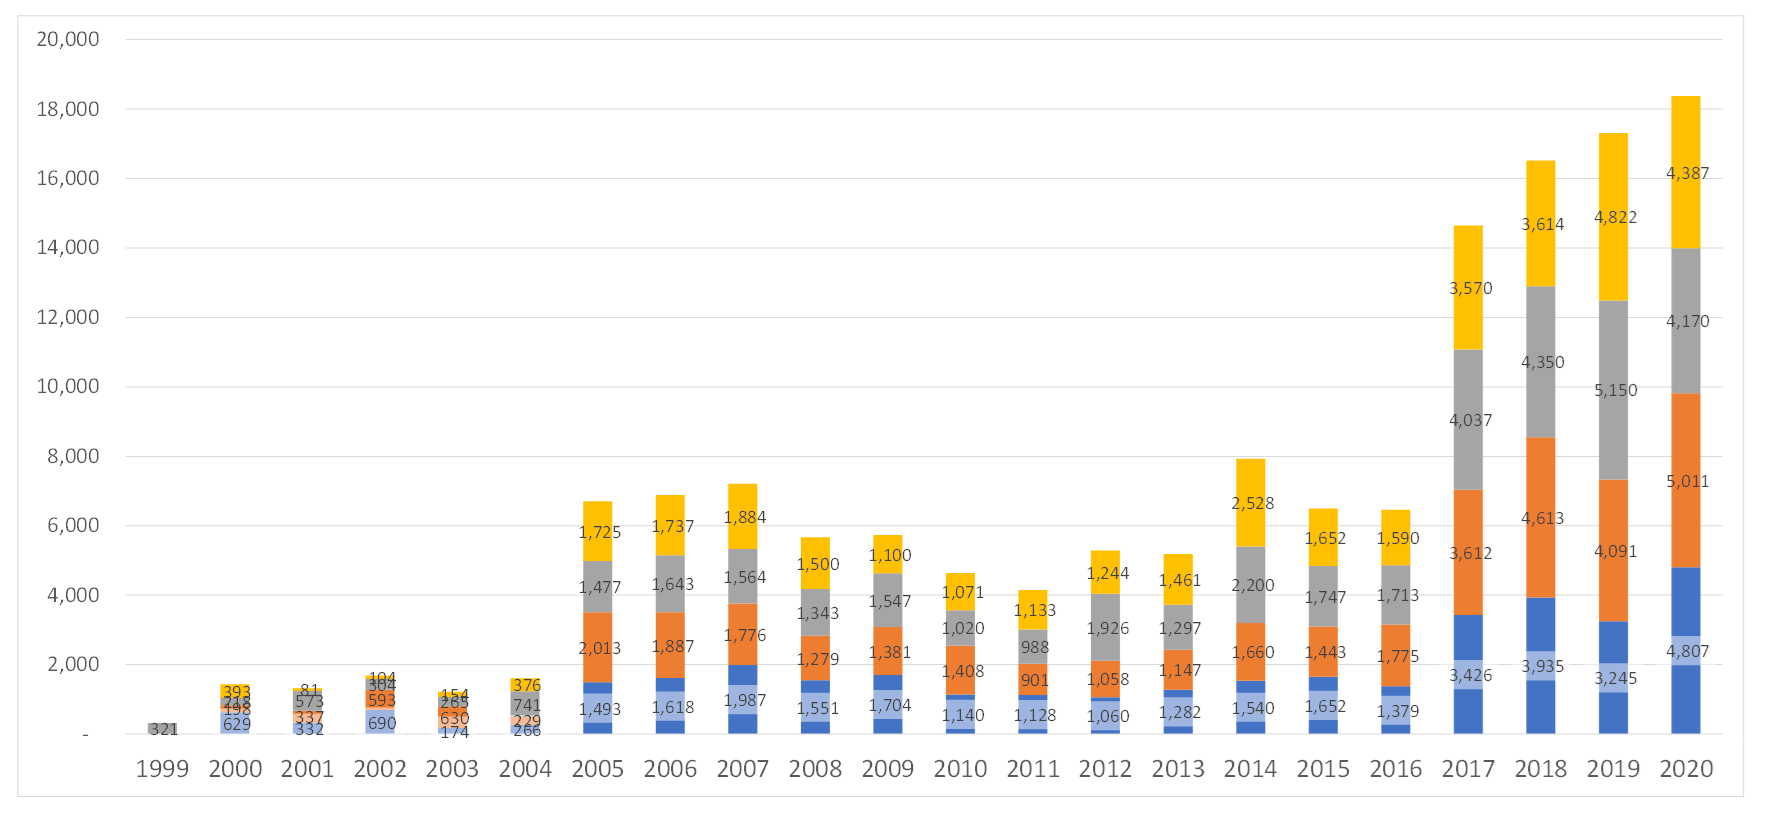 Comparison of Published CVE Records by Year for All Quarters - Q4 CY 2020